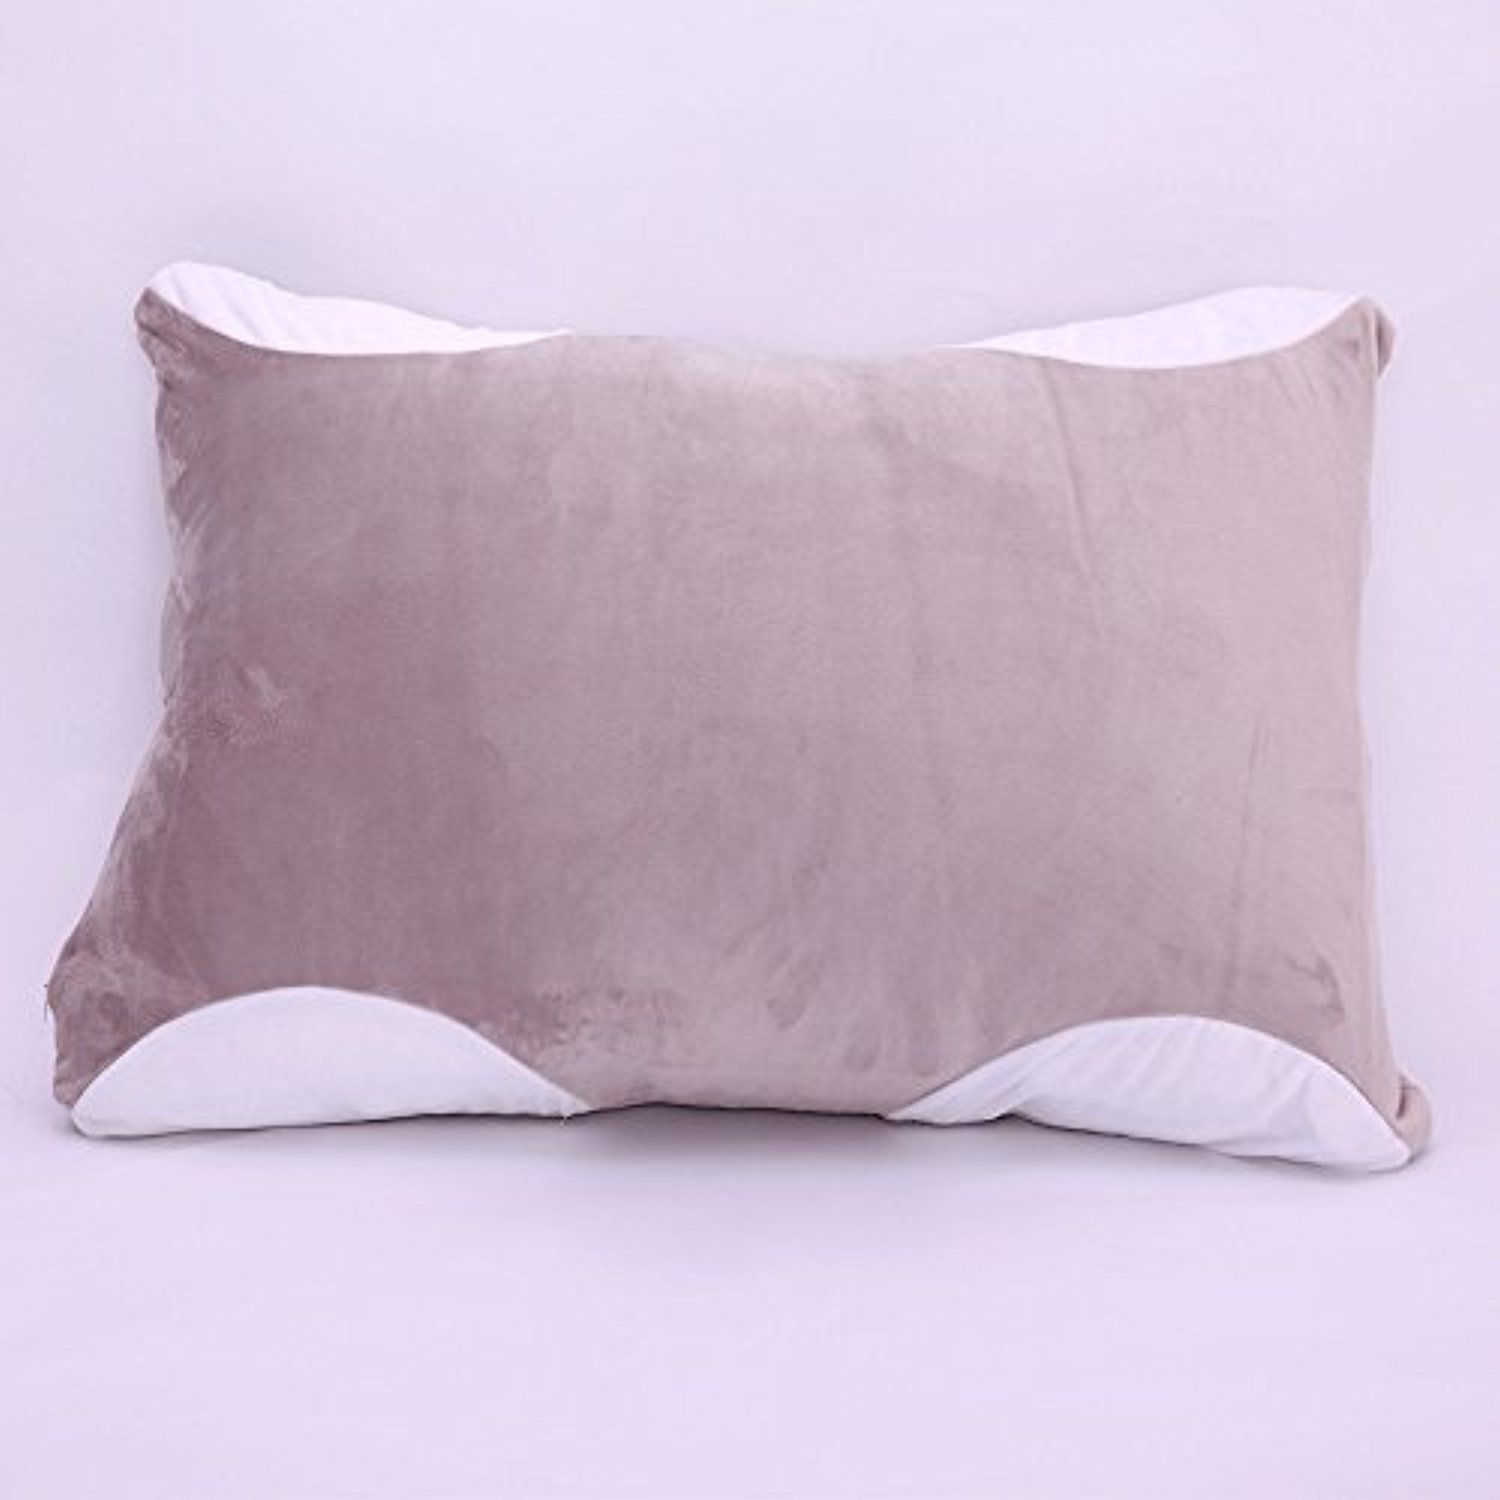 Dust Mite Pillow Covers Impressive Btwzm 2 Pack Luxury Zippered Queen Pillow Protector Covers  Unique Decorating Inspiration